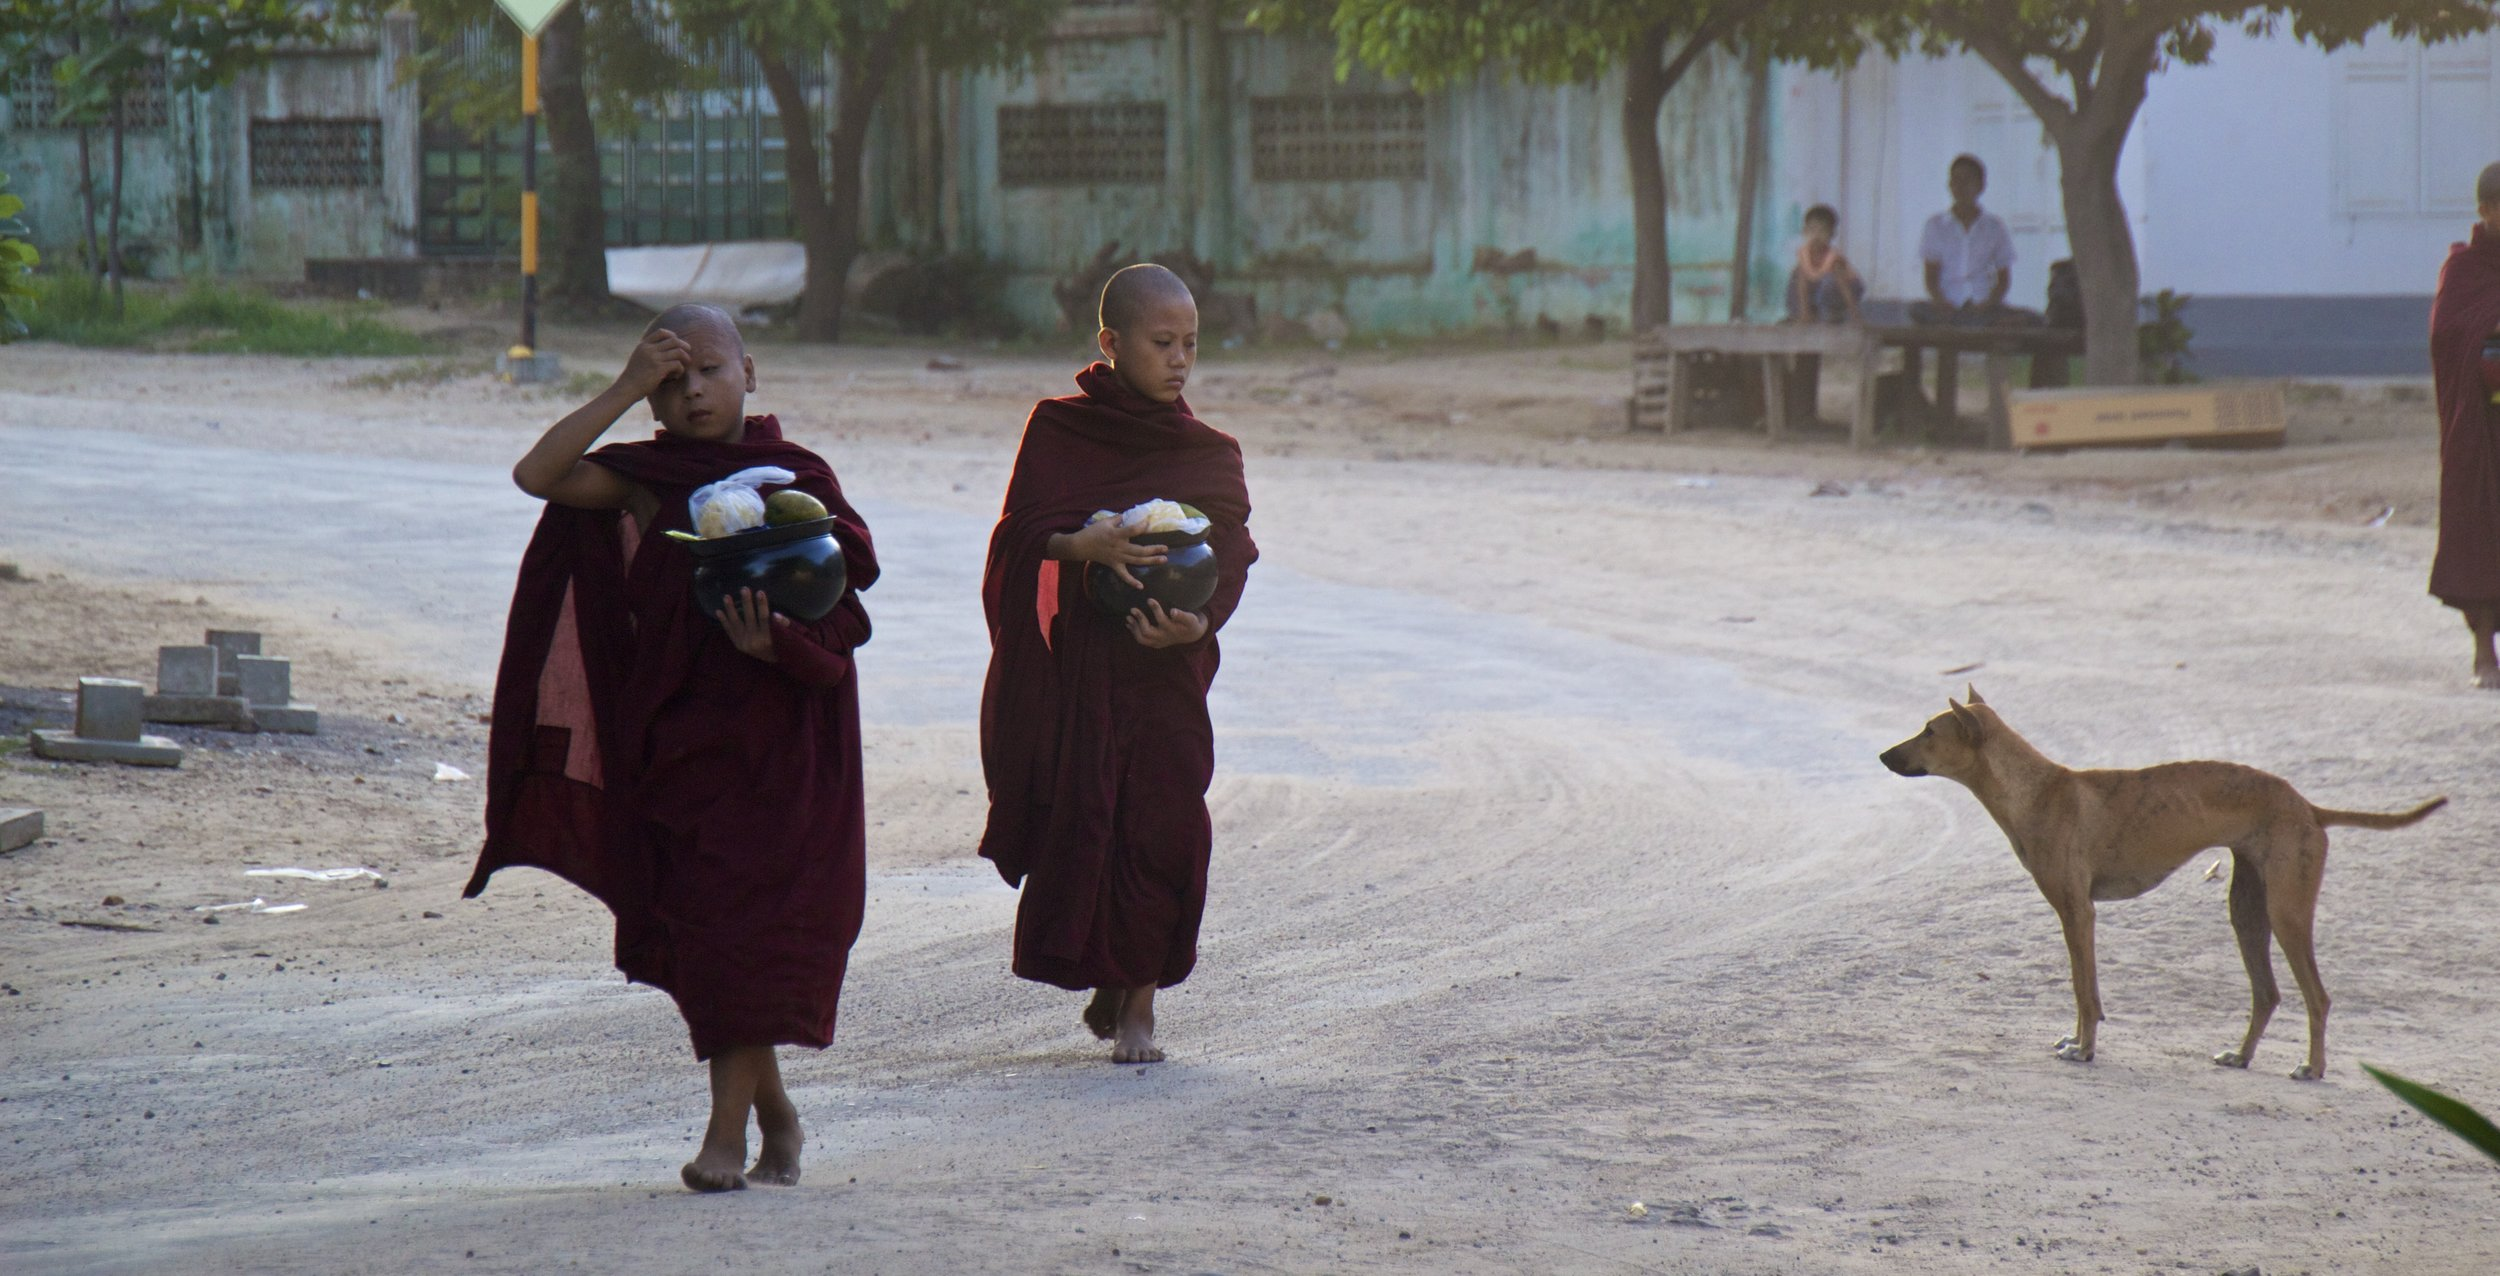 bagan burma myanmar buddhist monks alms 2.jpg